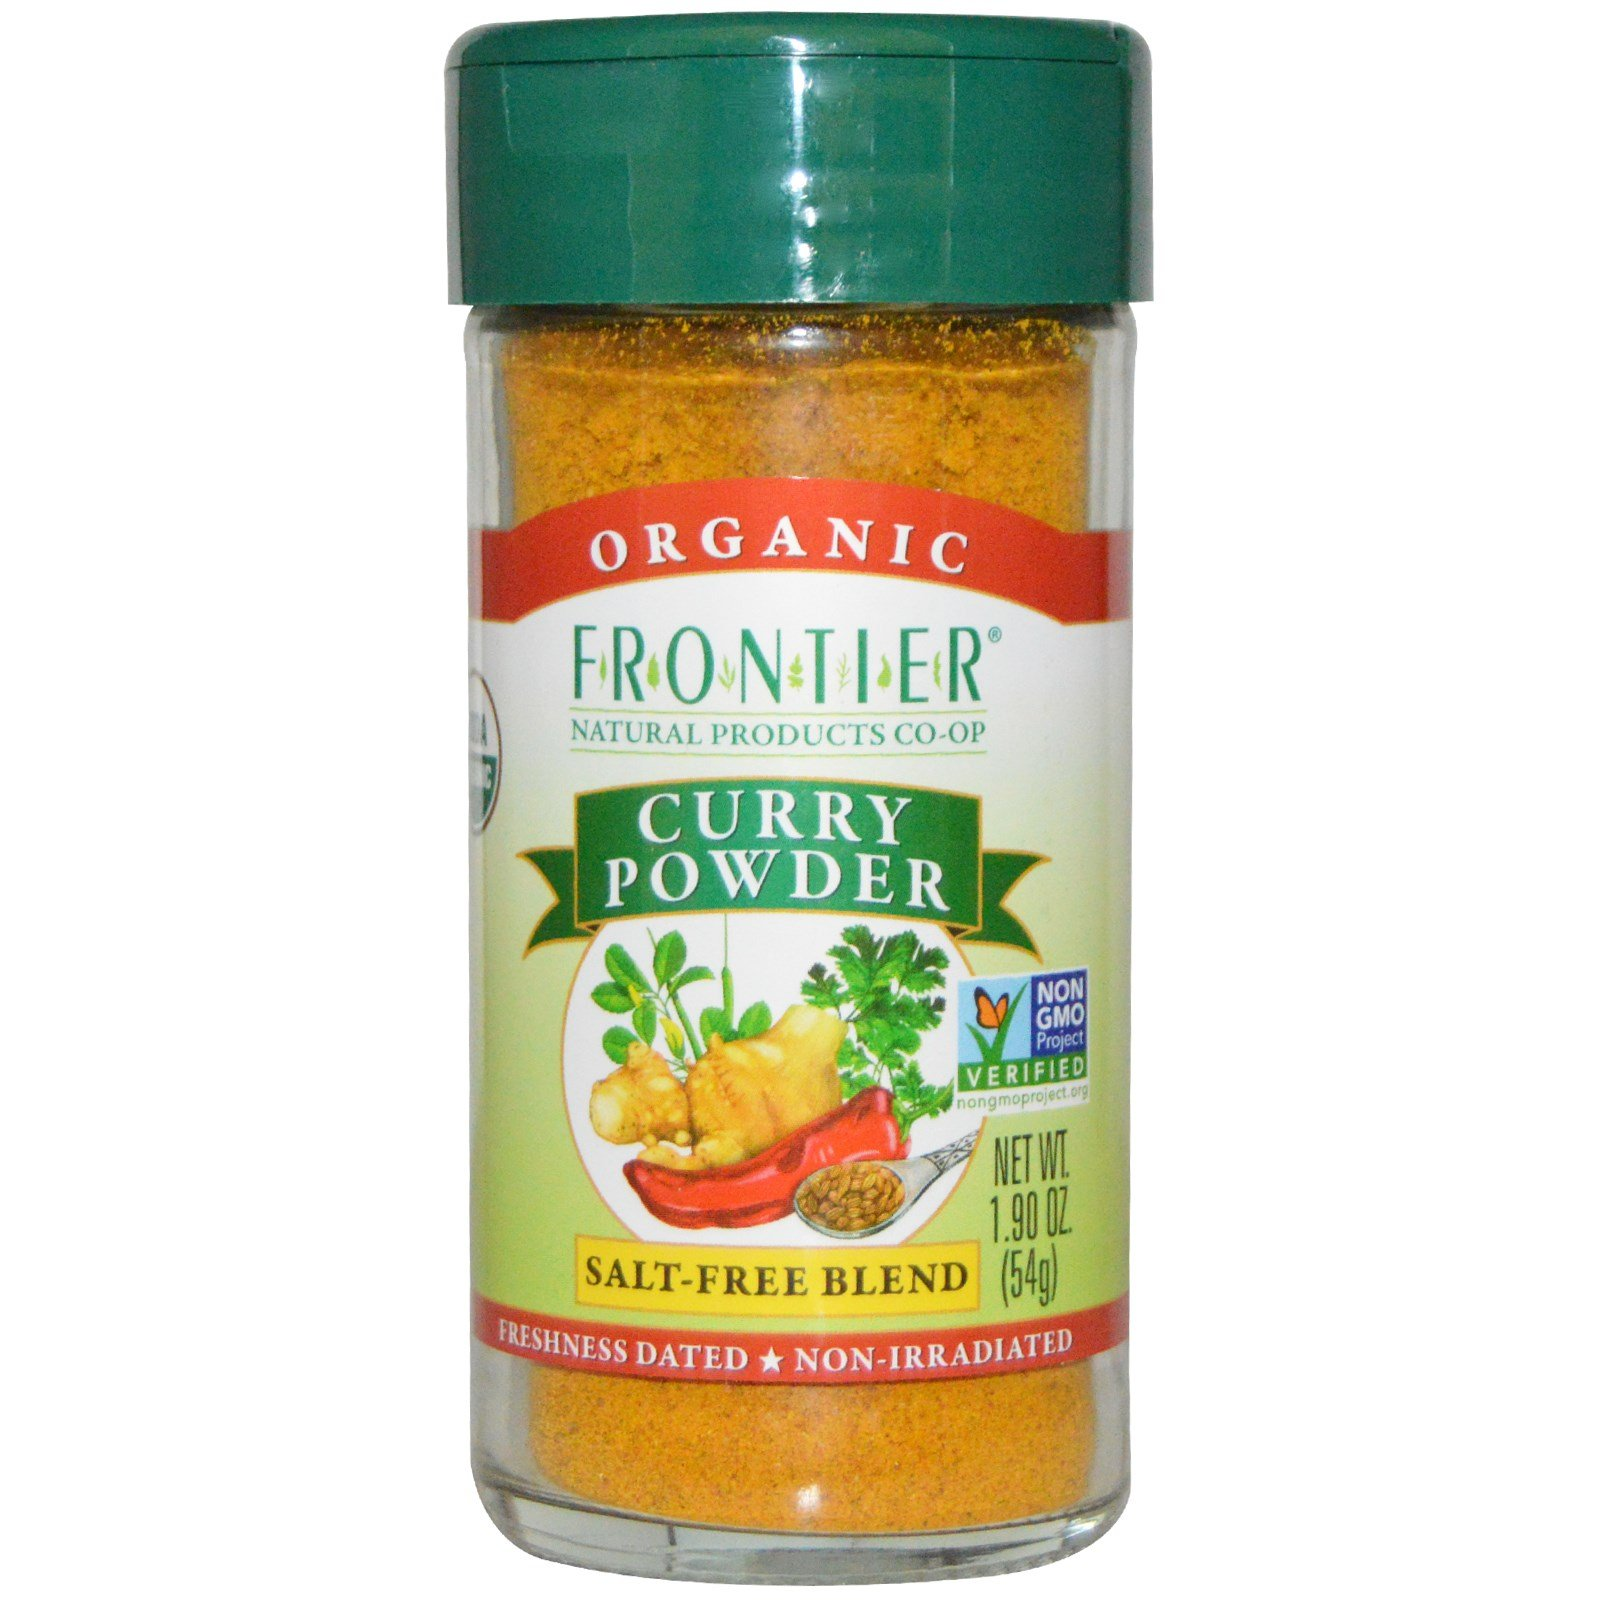 Frontier Natural Products, Organic Curry Powder, Salt-Free Blend, 1.90 oz (54 g) - 2pc